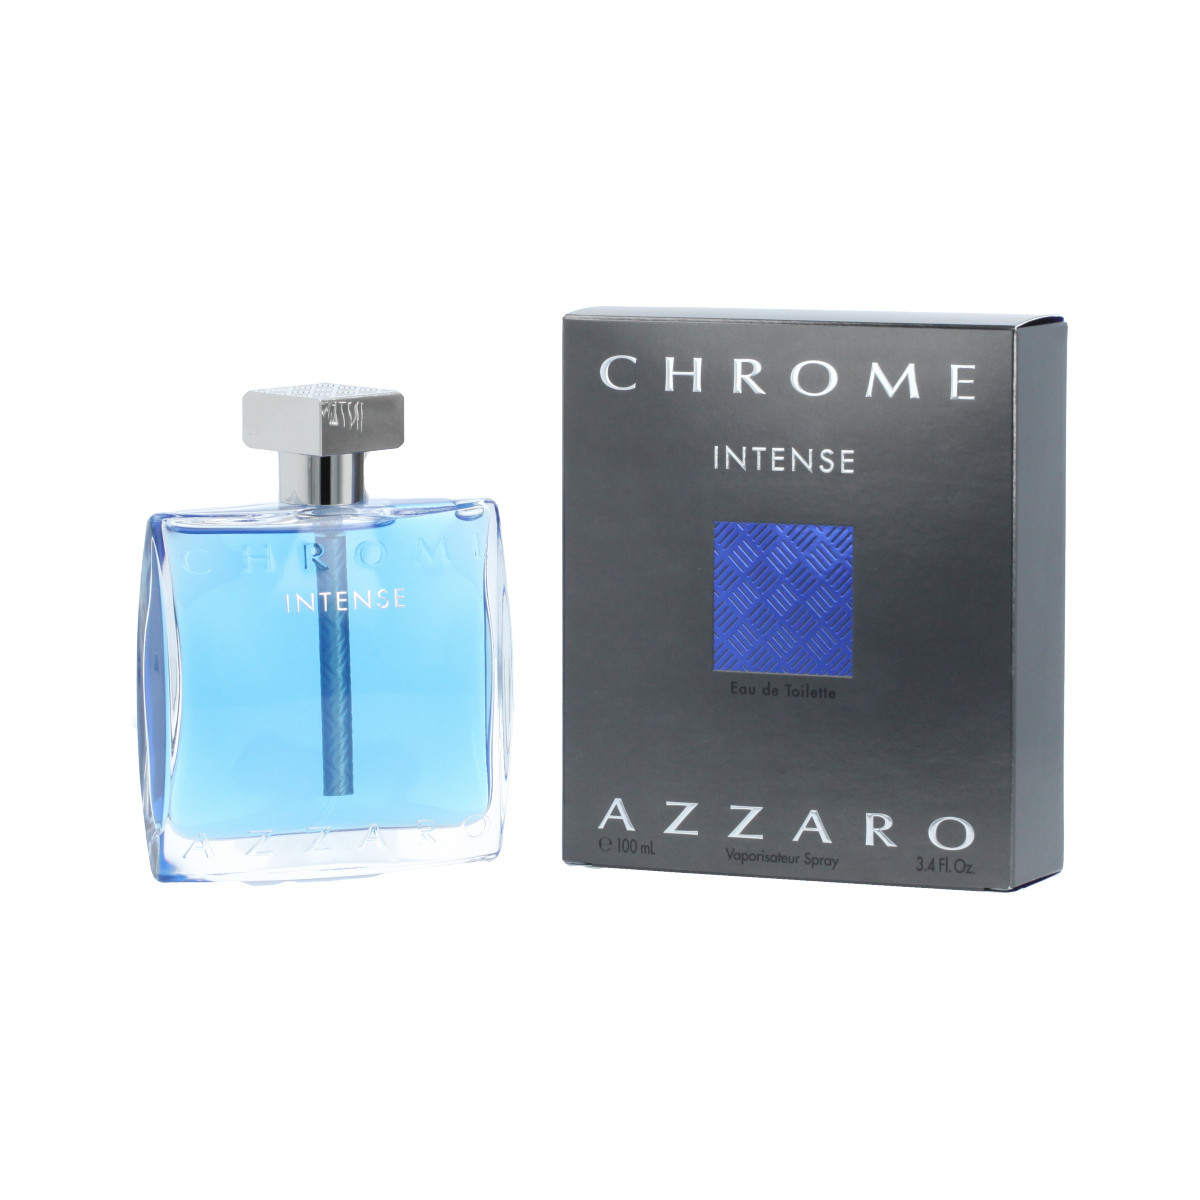 193ada45a4bafb Azzaro Chrome Intense Eau De Toilette 100 ml (man) - Chrome Intense ...